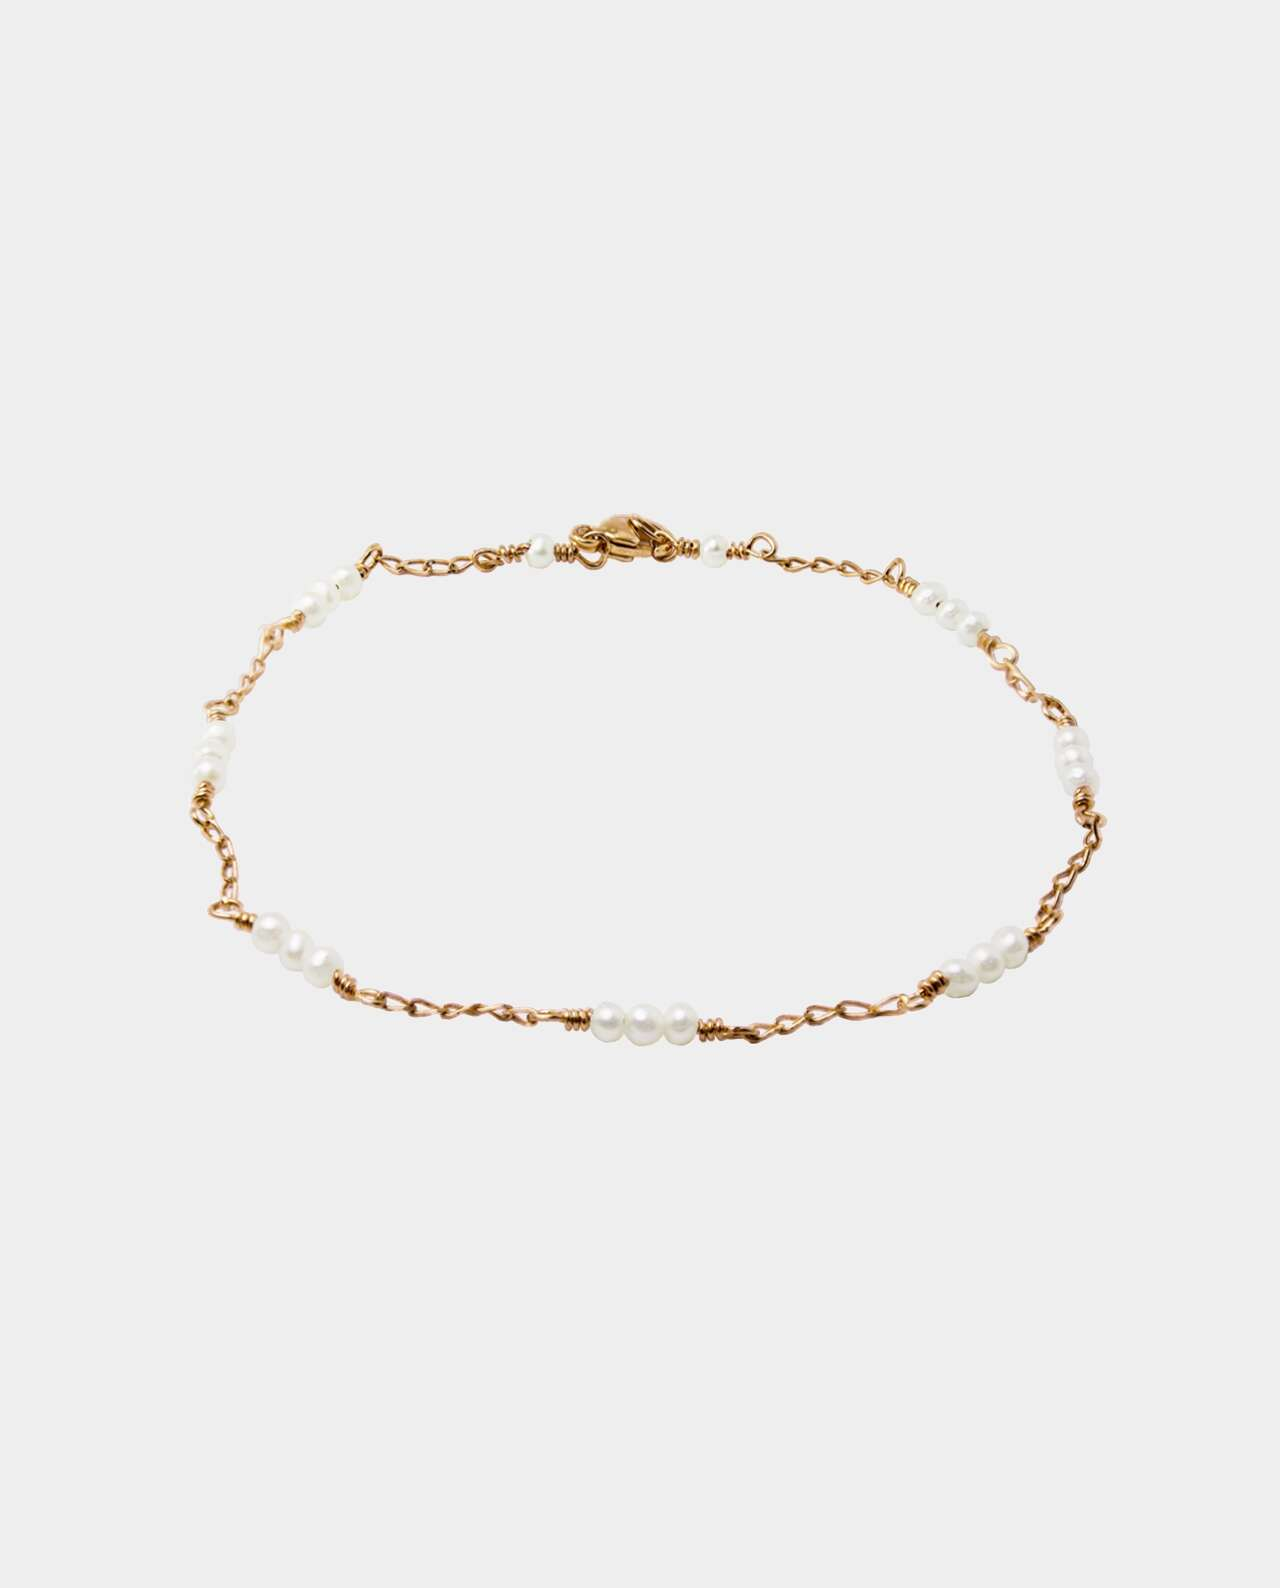 Handmade bracelet with twenty white pearls and chain of sterling silver plated with 18 carat gold